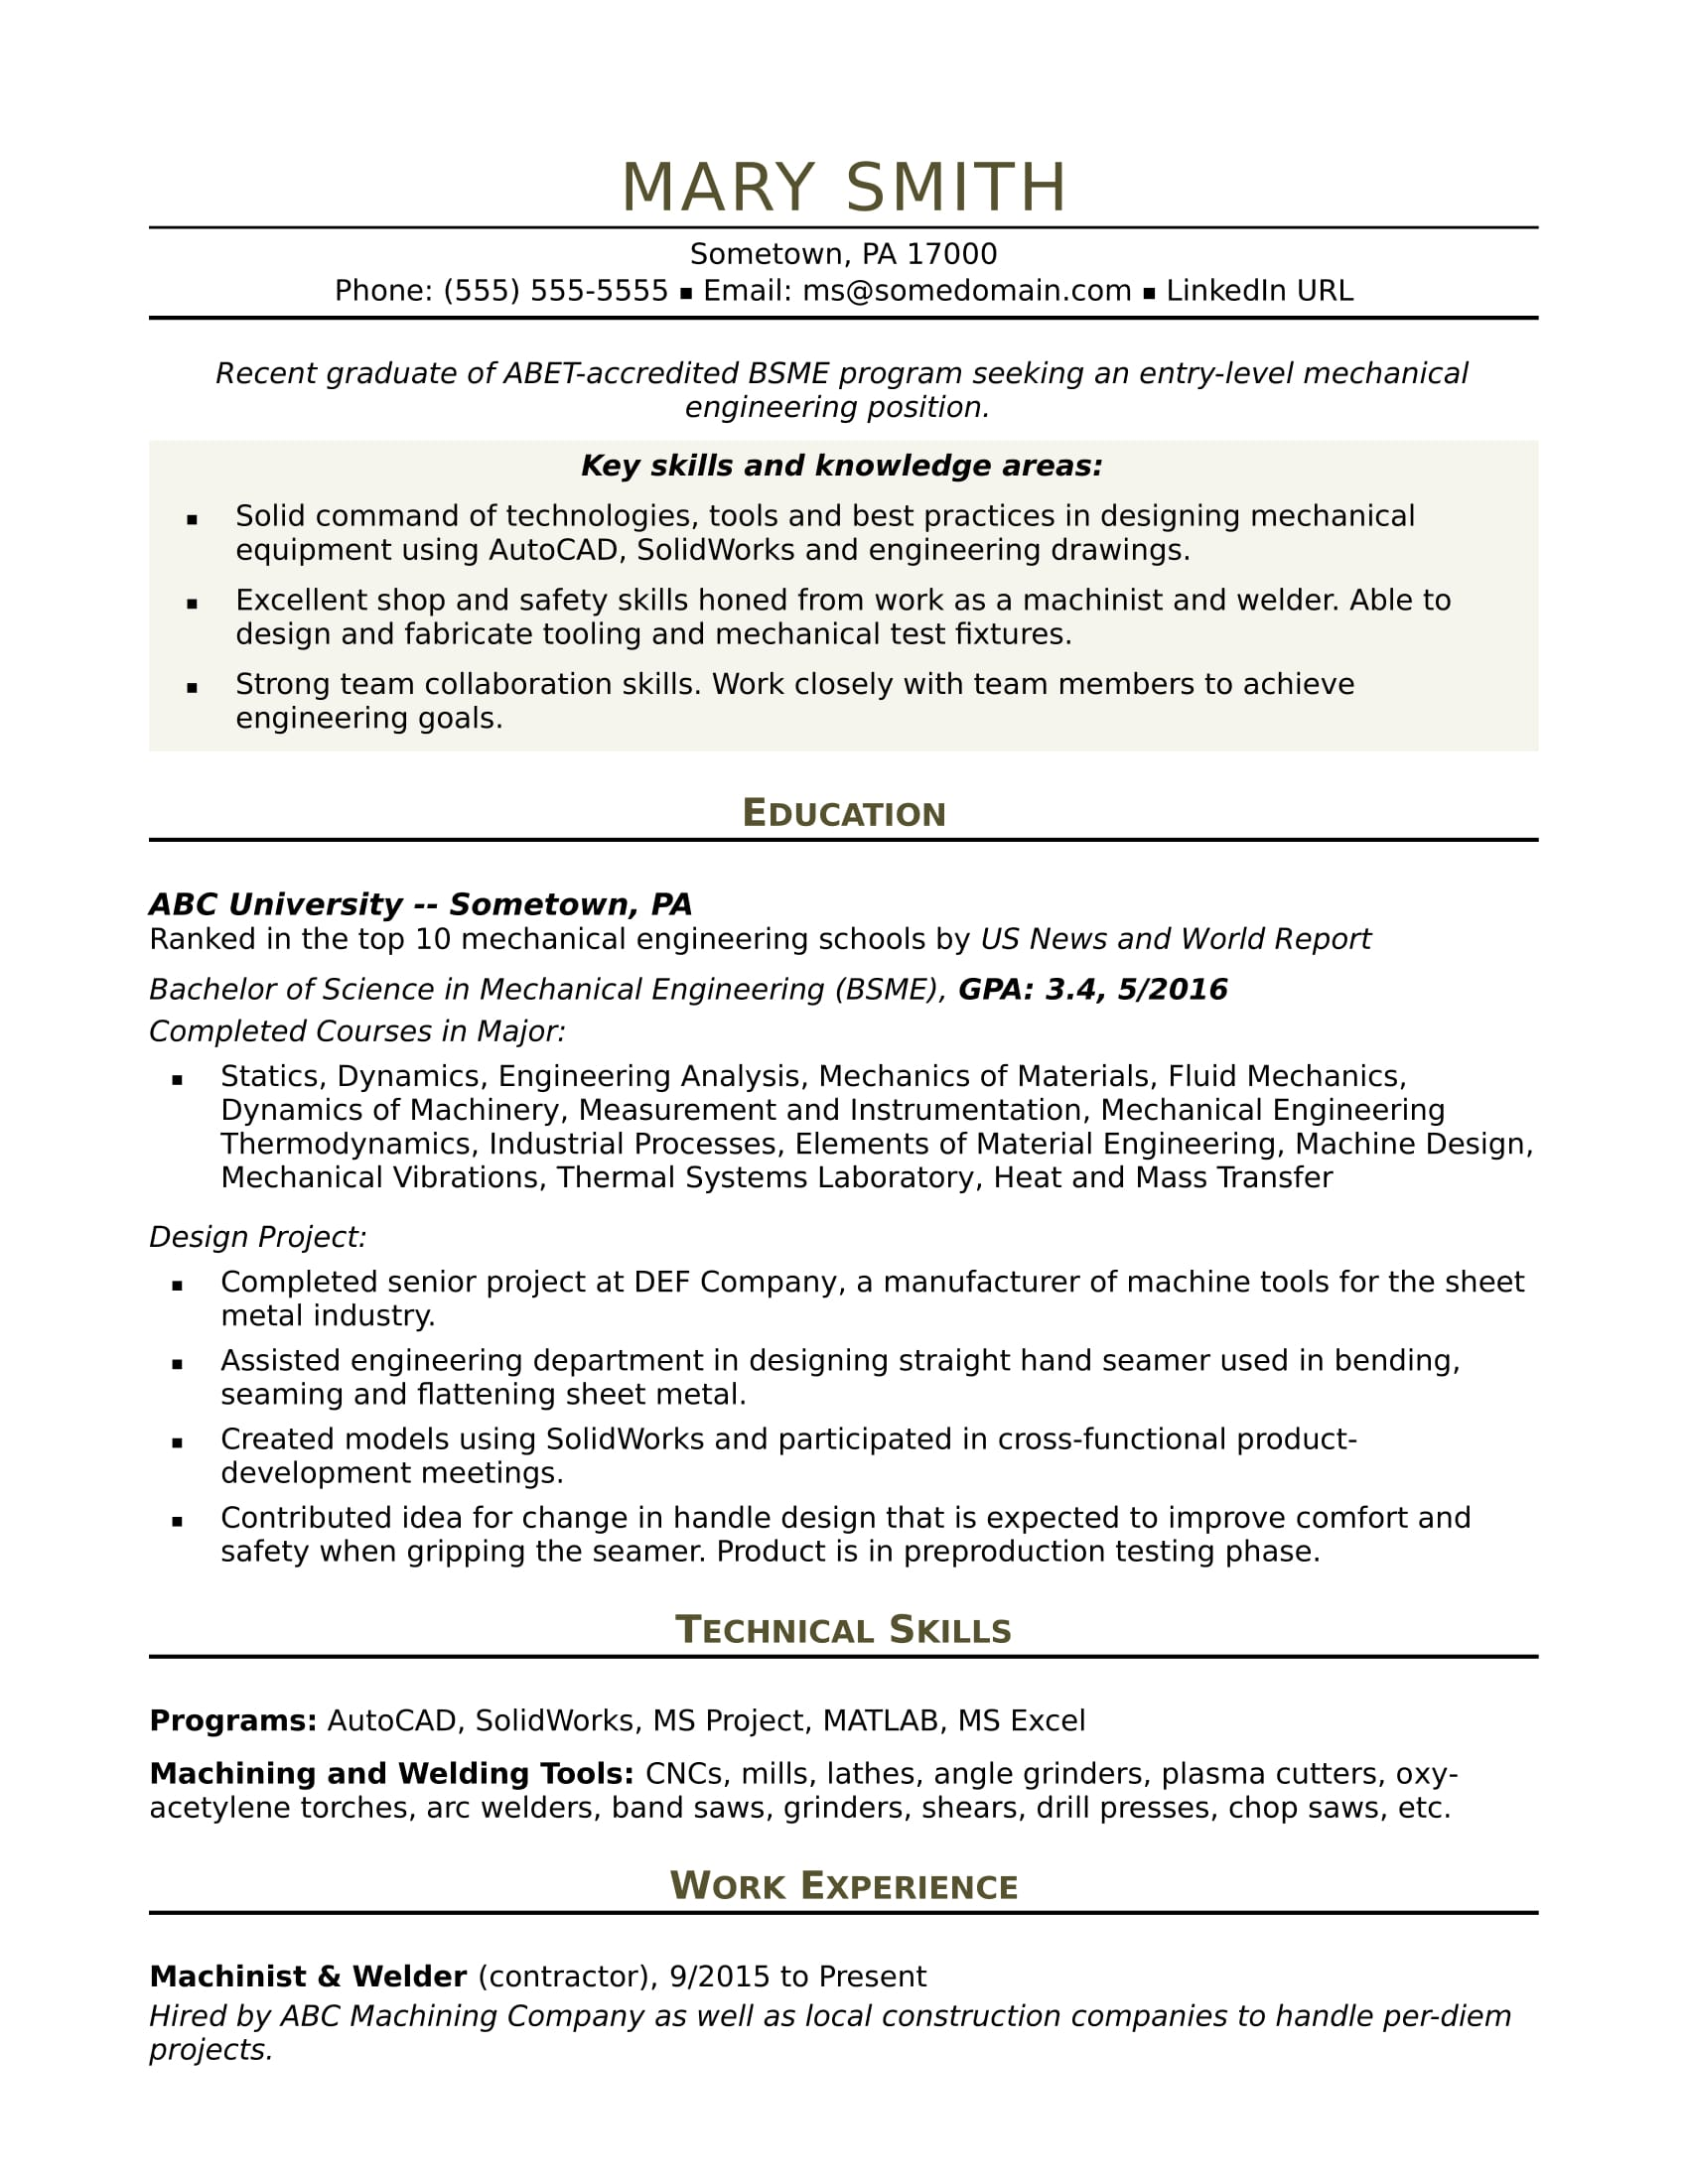 skills for mechanical engineers for resumes